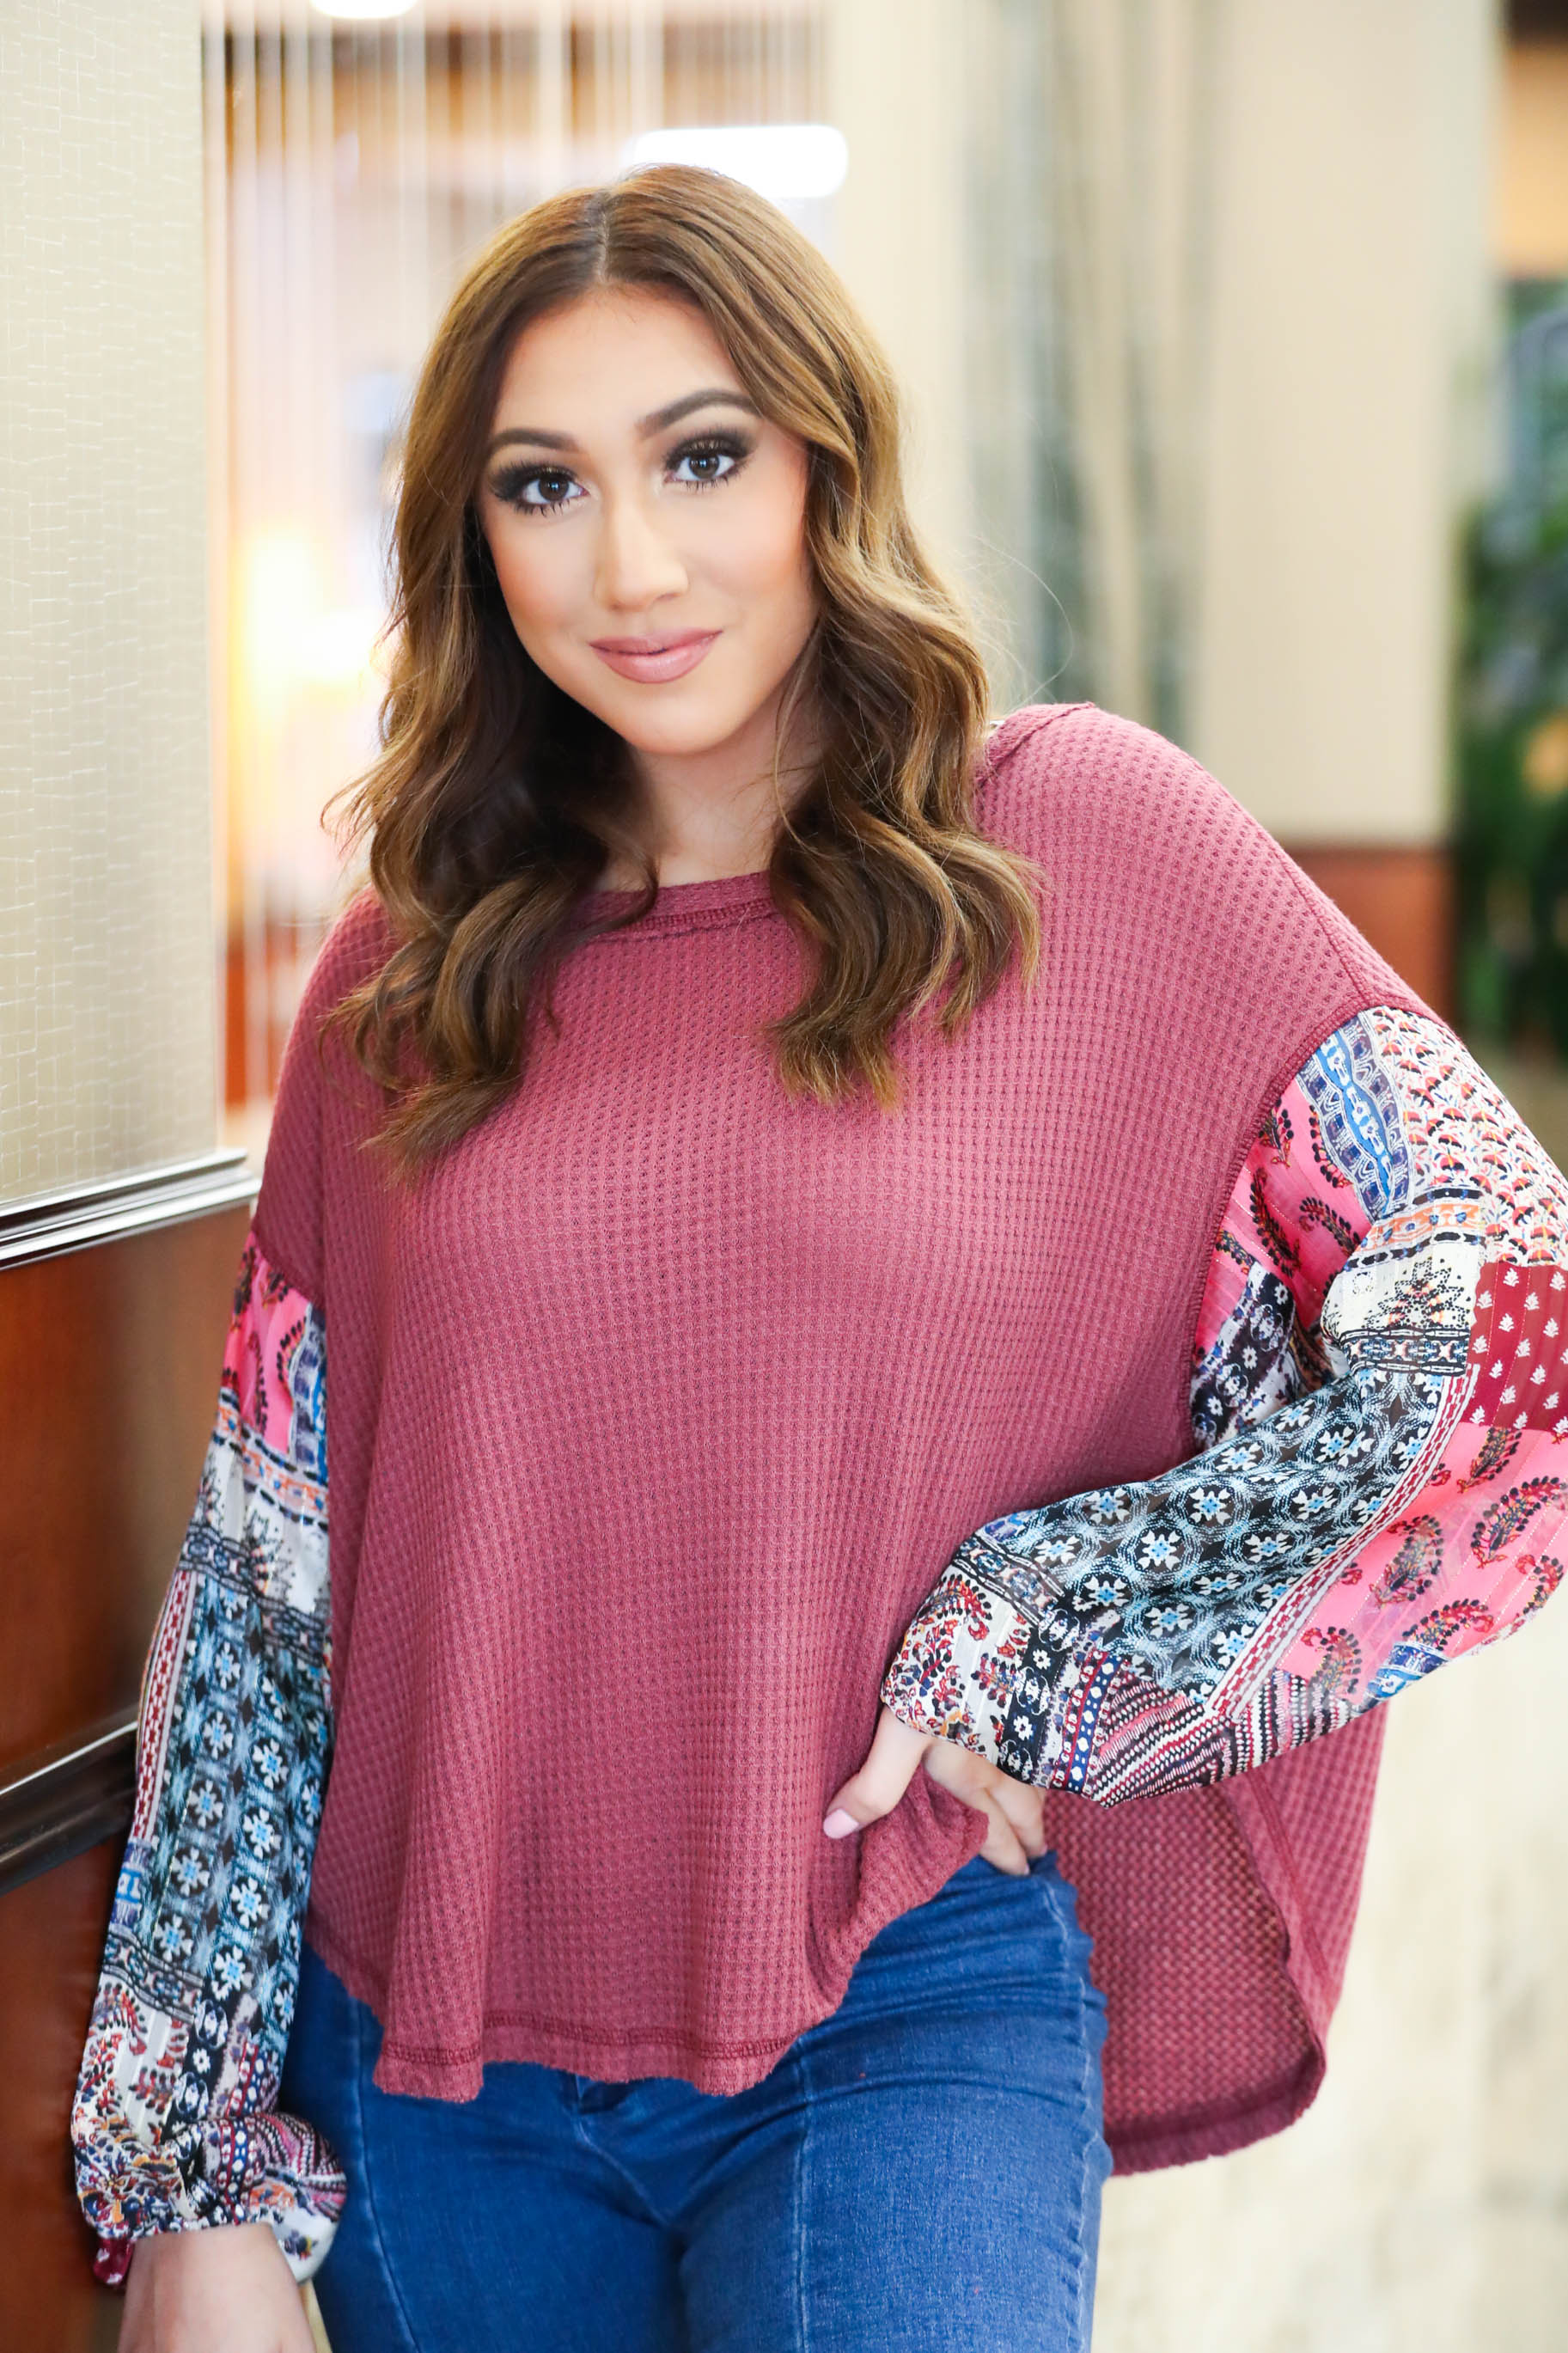 California Chic Mulit-Patterned Sleeve Sweater